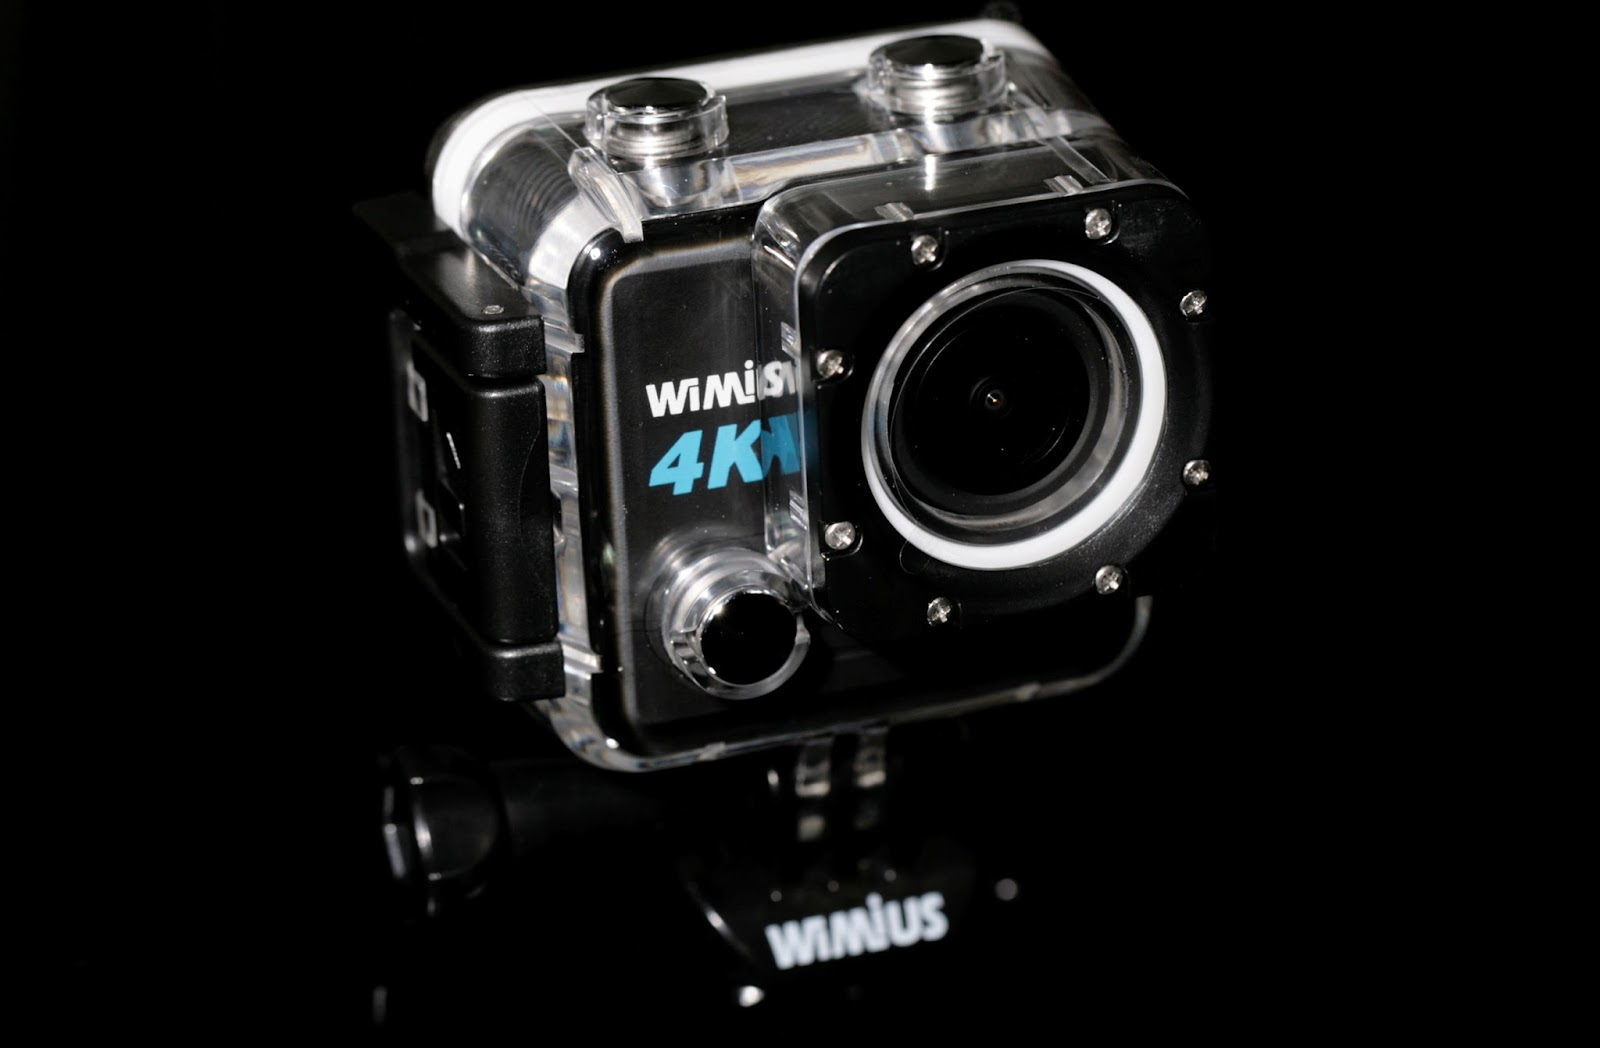 This Is A Review For WIMIUS 4K 20MP Sports Action Camera HD Cam WiFi Underwater 170 Wide View Angle 2 Inch LCD Screen Helmet